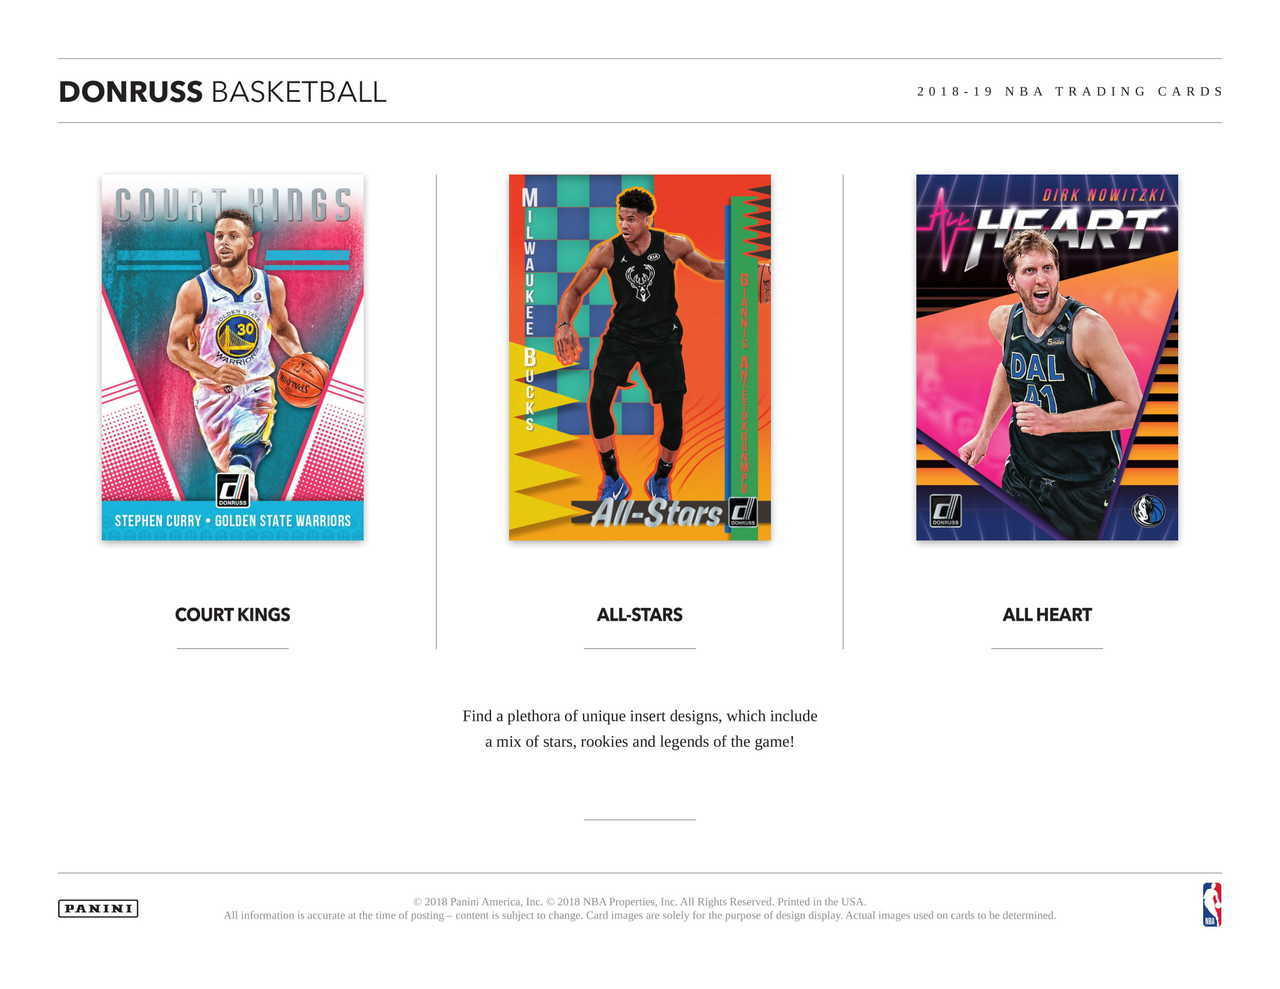 201819_Panini_Donruss_Basketball_Hobby_Box__3.jpg